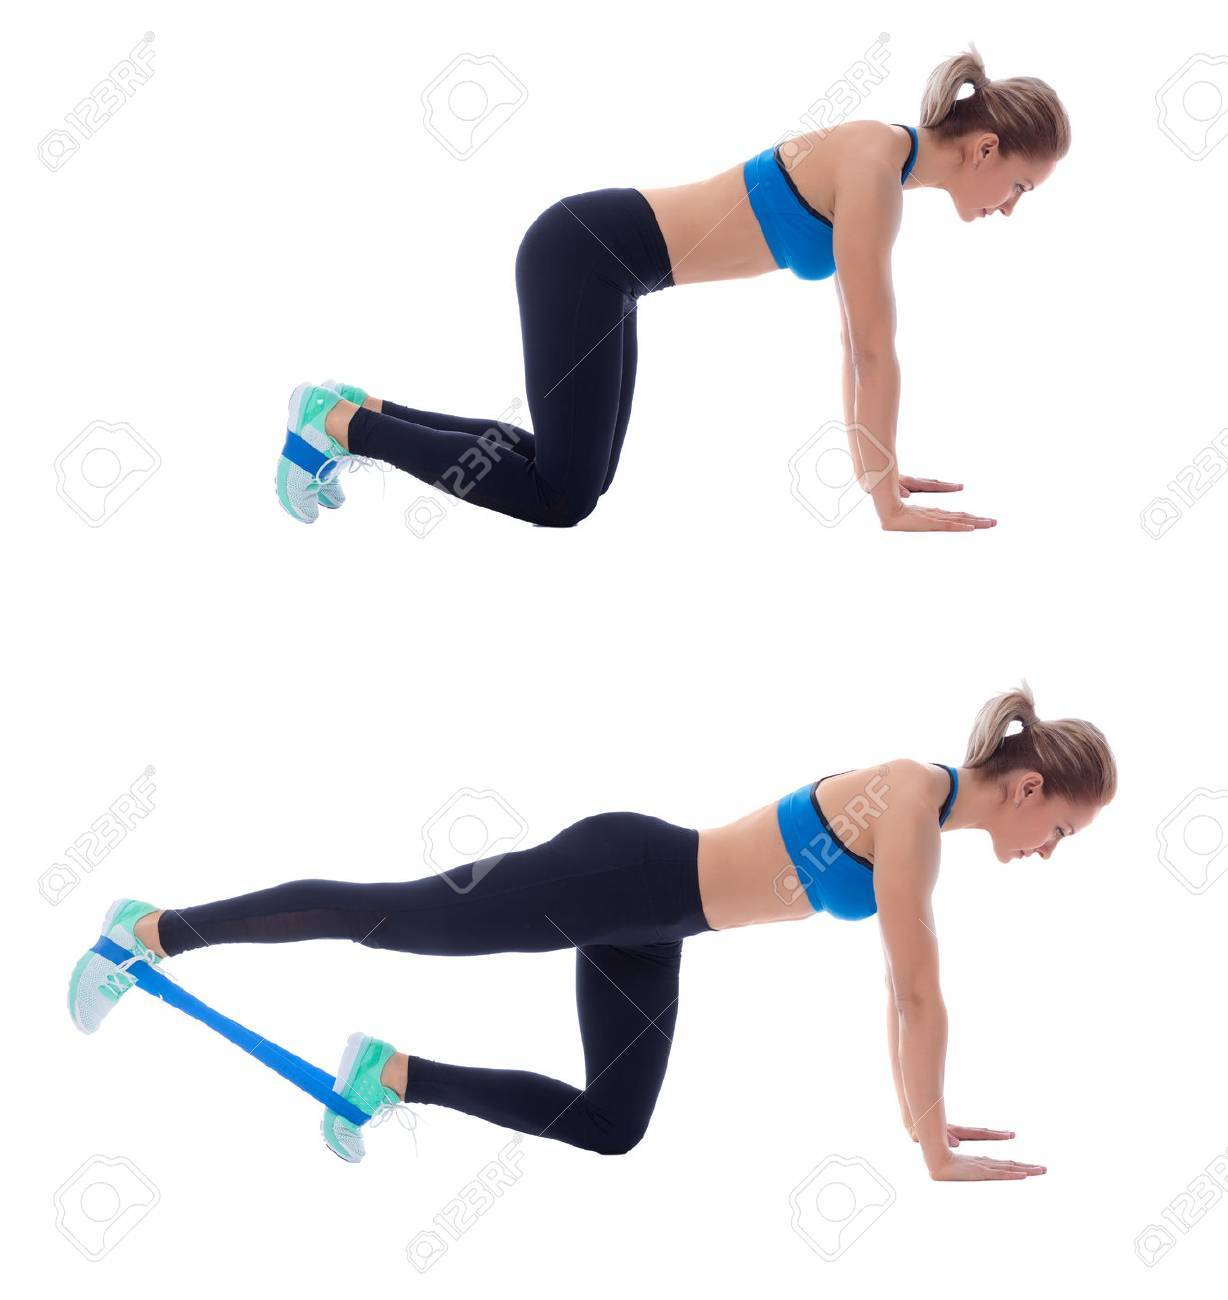 Elastic Band Exercises Executed With A Professional Trainer Stock